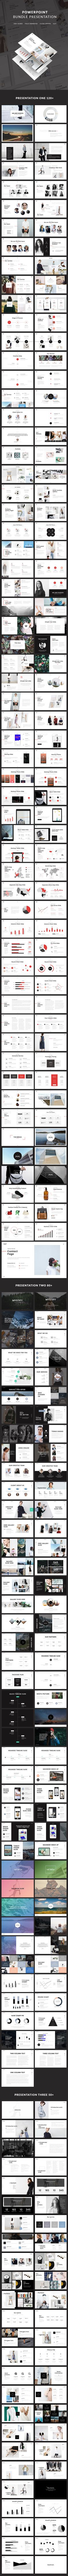 PowerPoint Bundle 3 in 1 #300x600 #entrepreneur • Download ➝ https://graphicriver.net/item/powerpoint-bundle-3-in-1/18608746?ref=pxcr